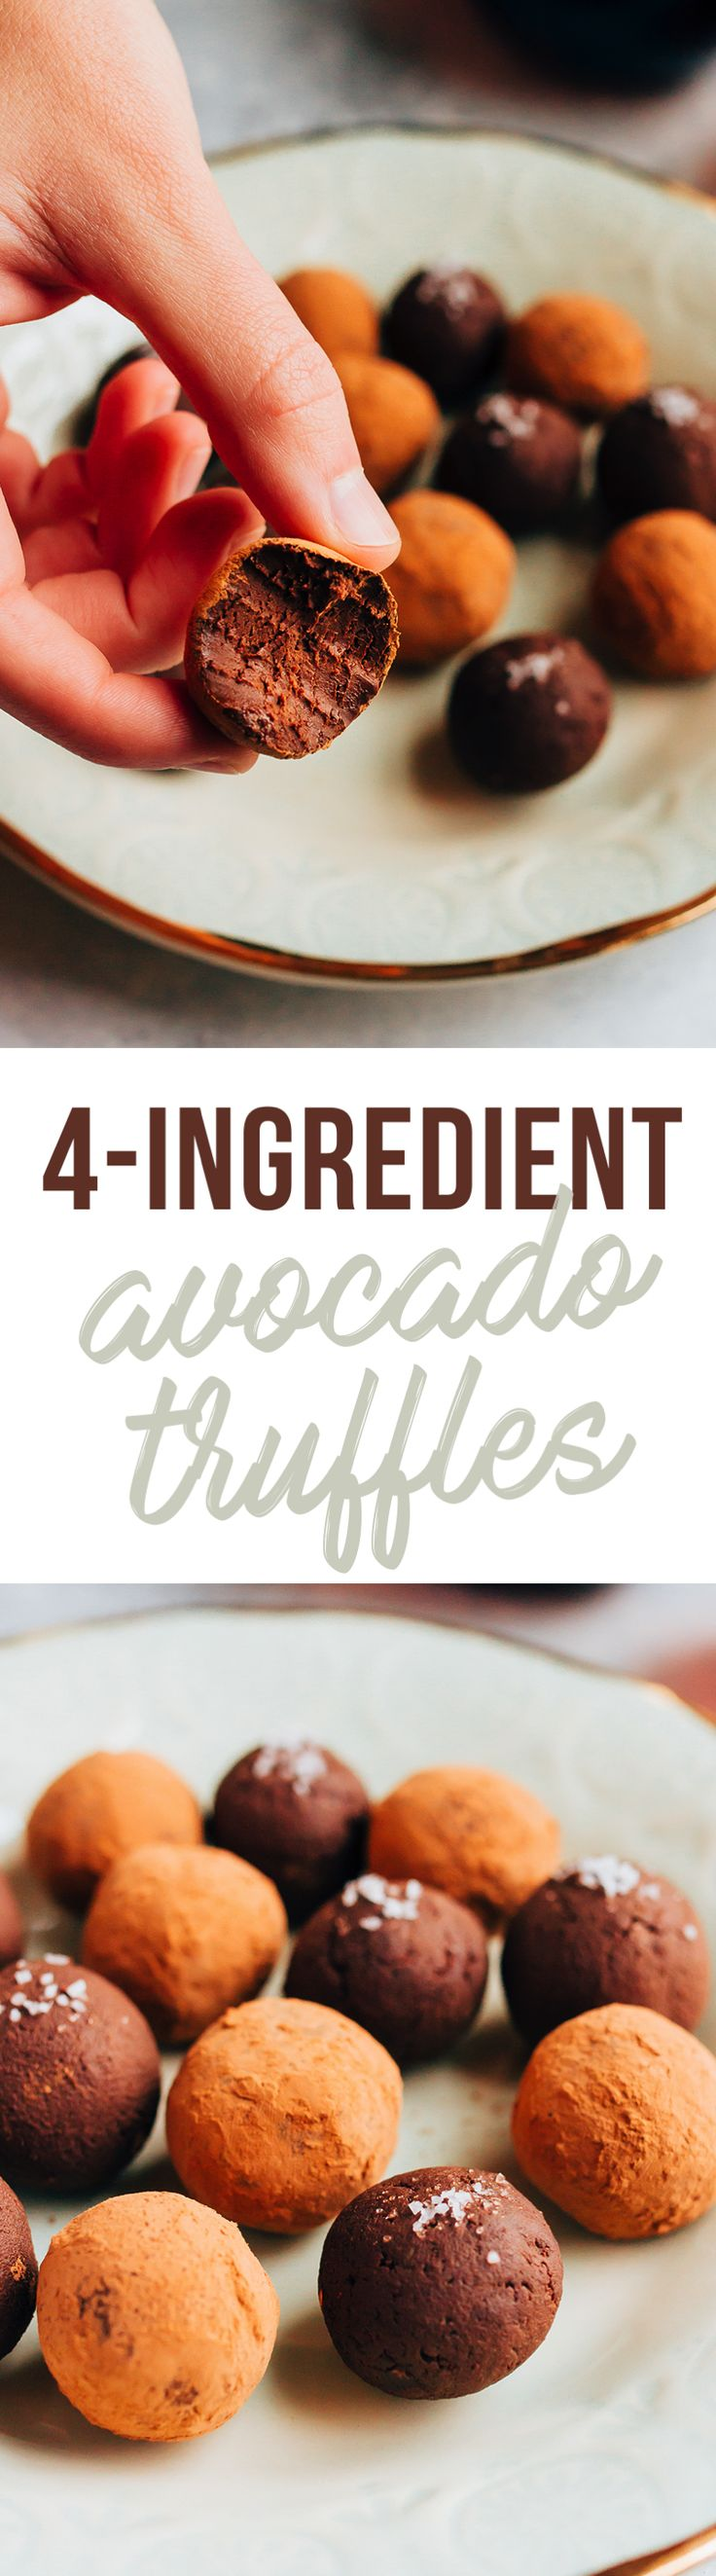 No one will never guess these decadent 4-ingredient chocolate truffles are made with avocado instead of heavy cream. As long as you use dairy-free chocolate chips, these creamy truffles are gluten-free and vegan!